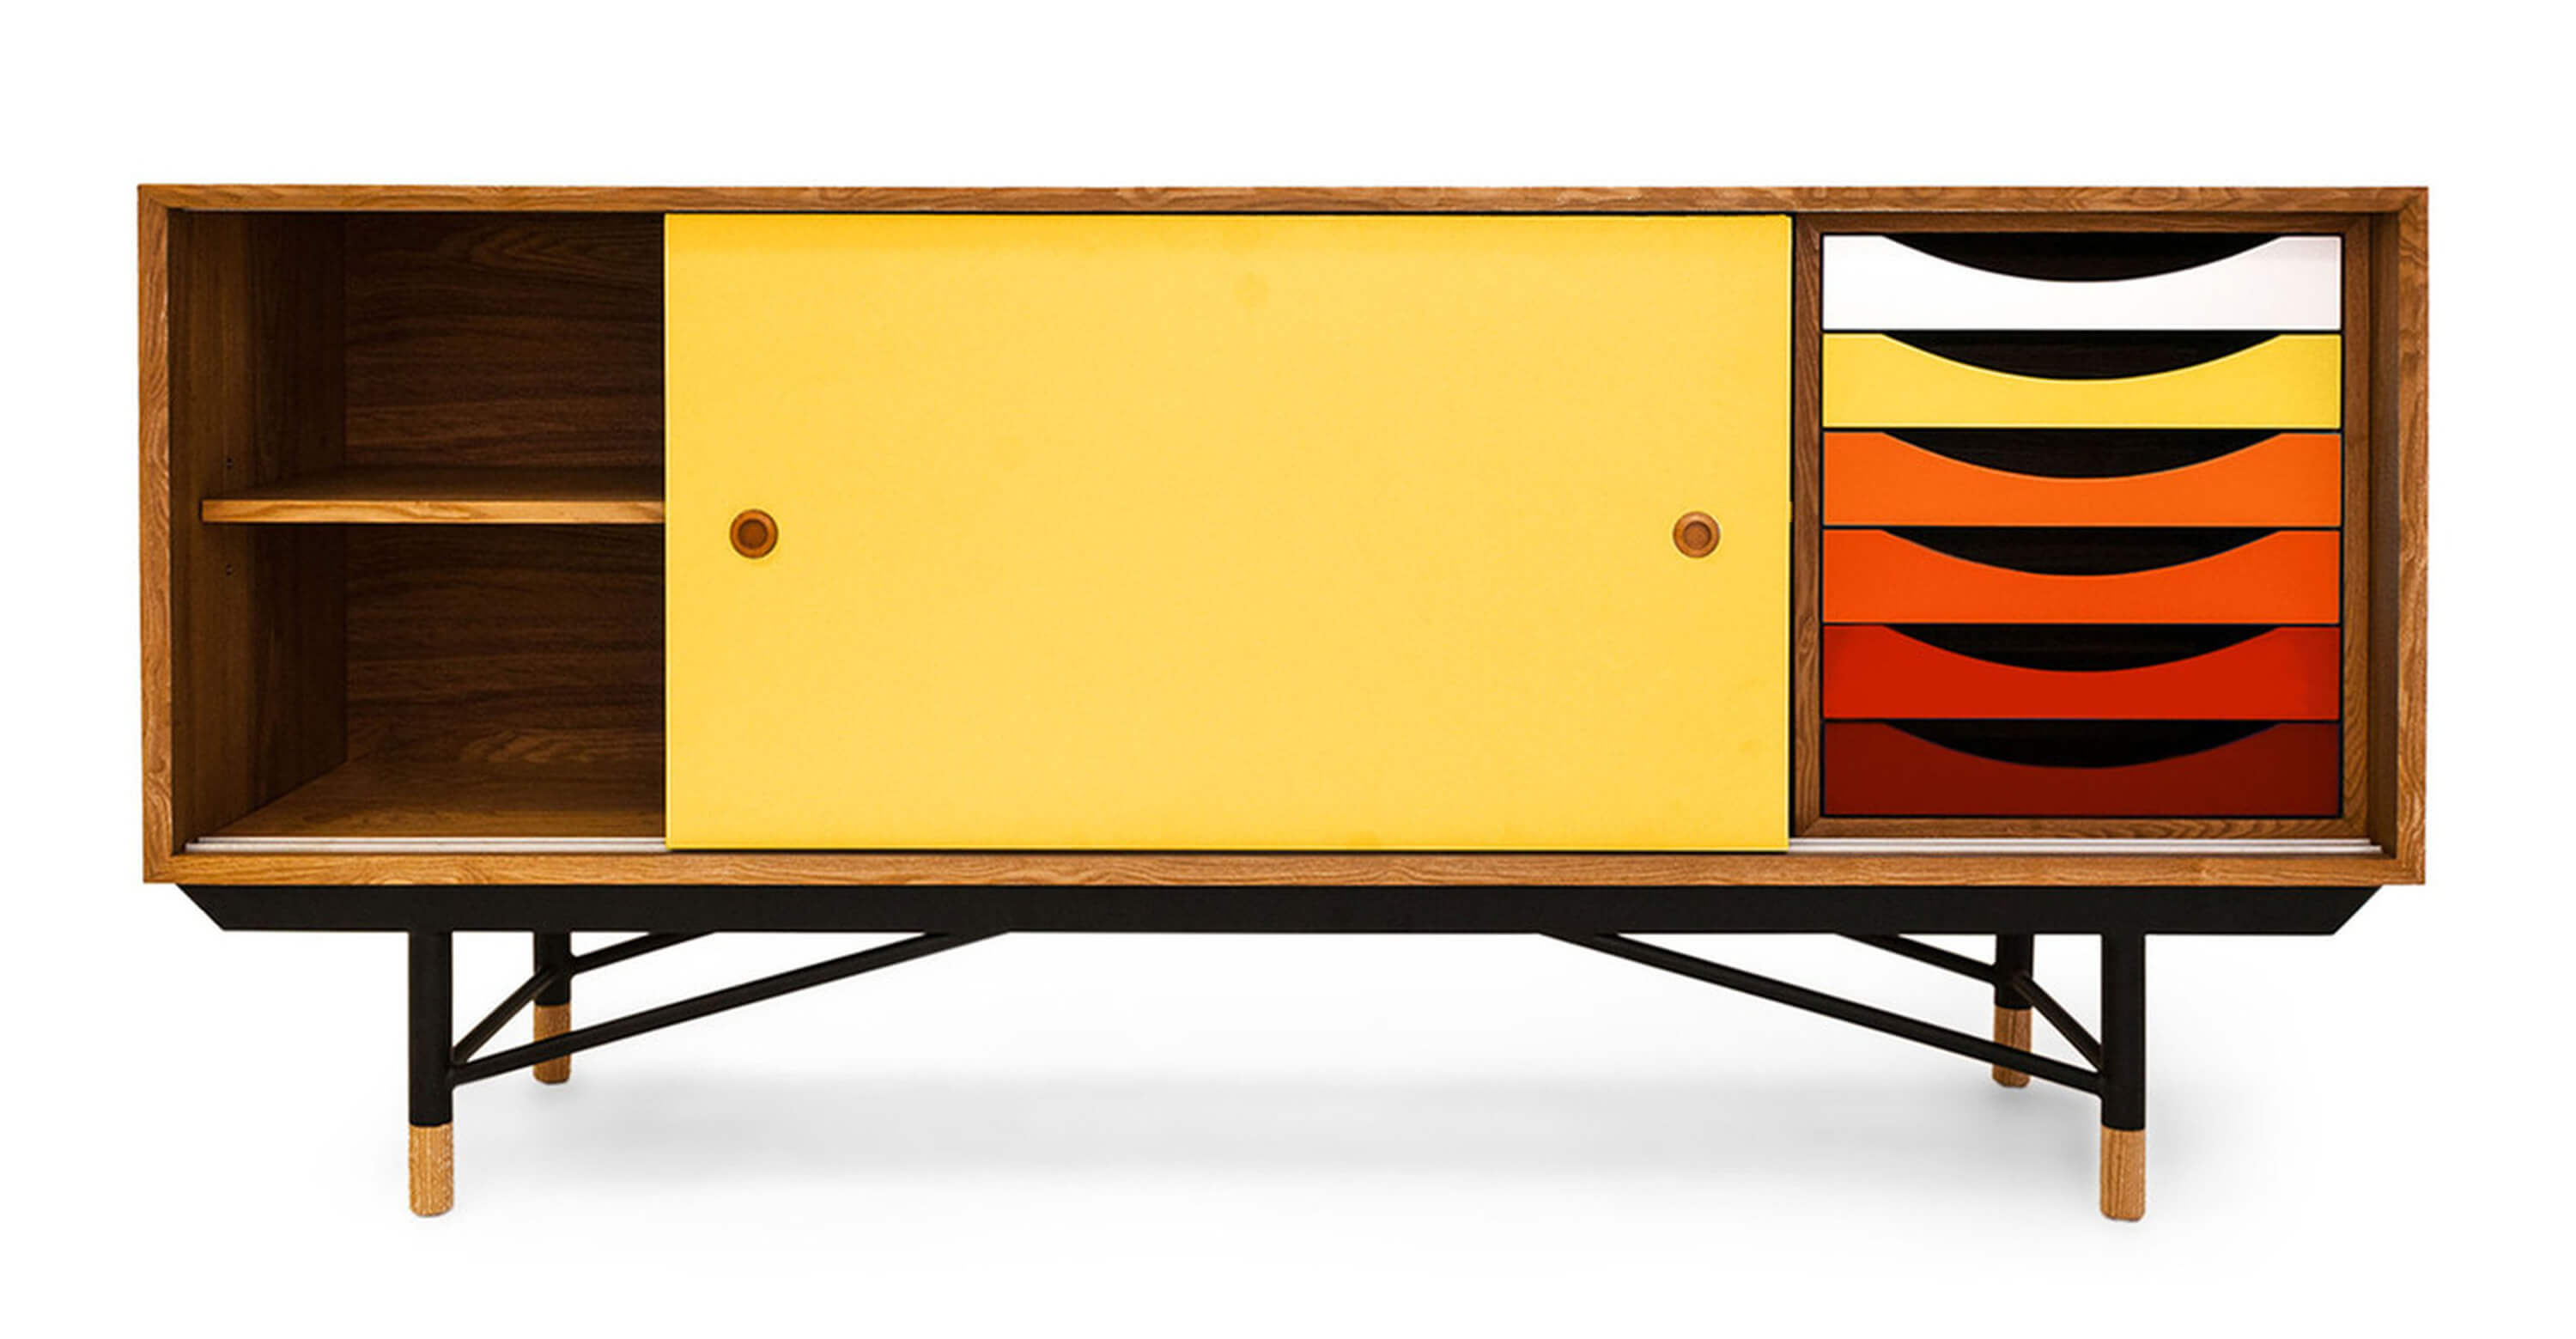 Mid century credenzas complete with a repeating right cabinet that is colored white, yellow, orange, and red.